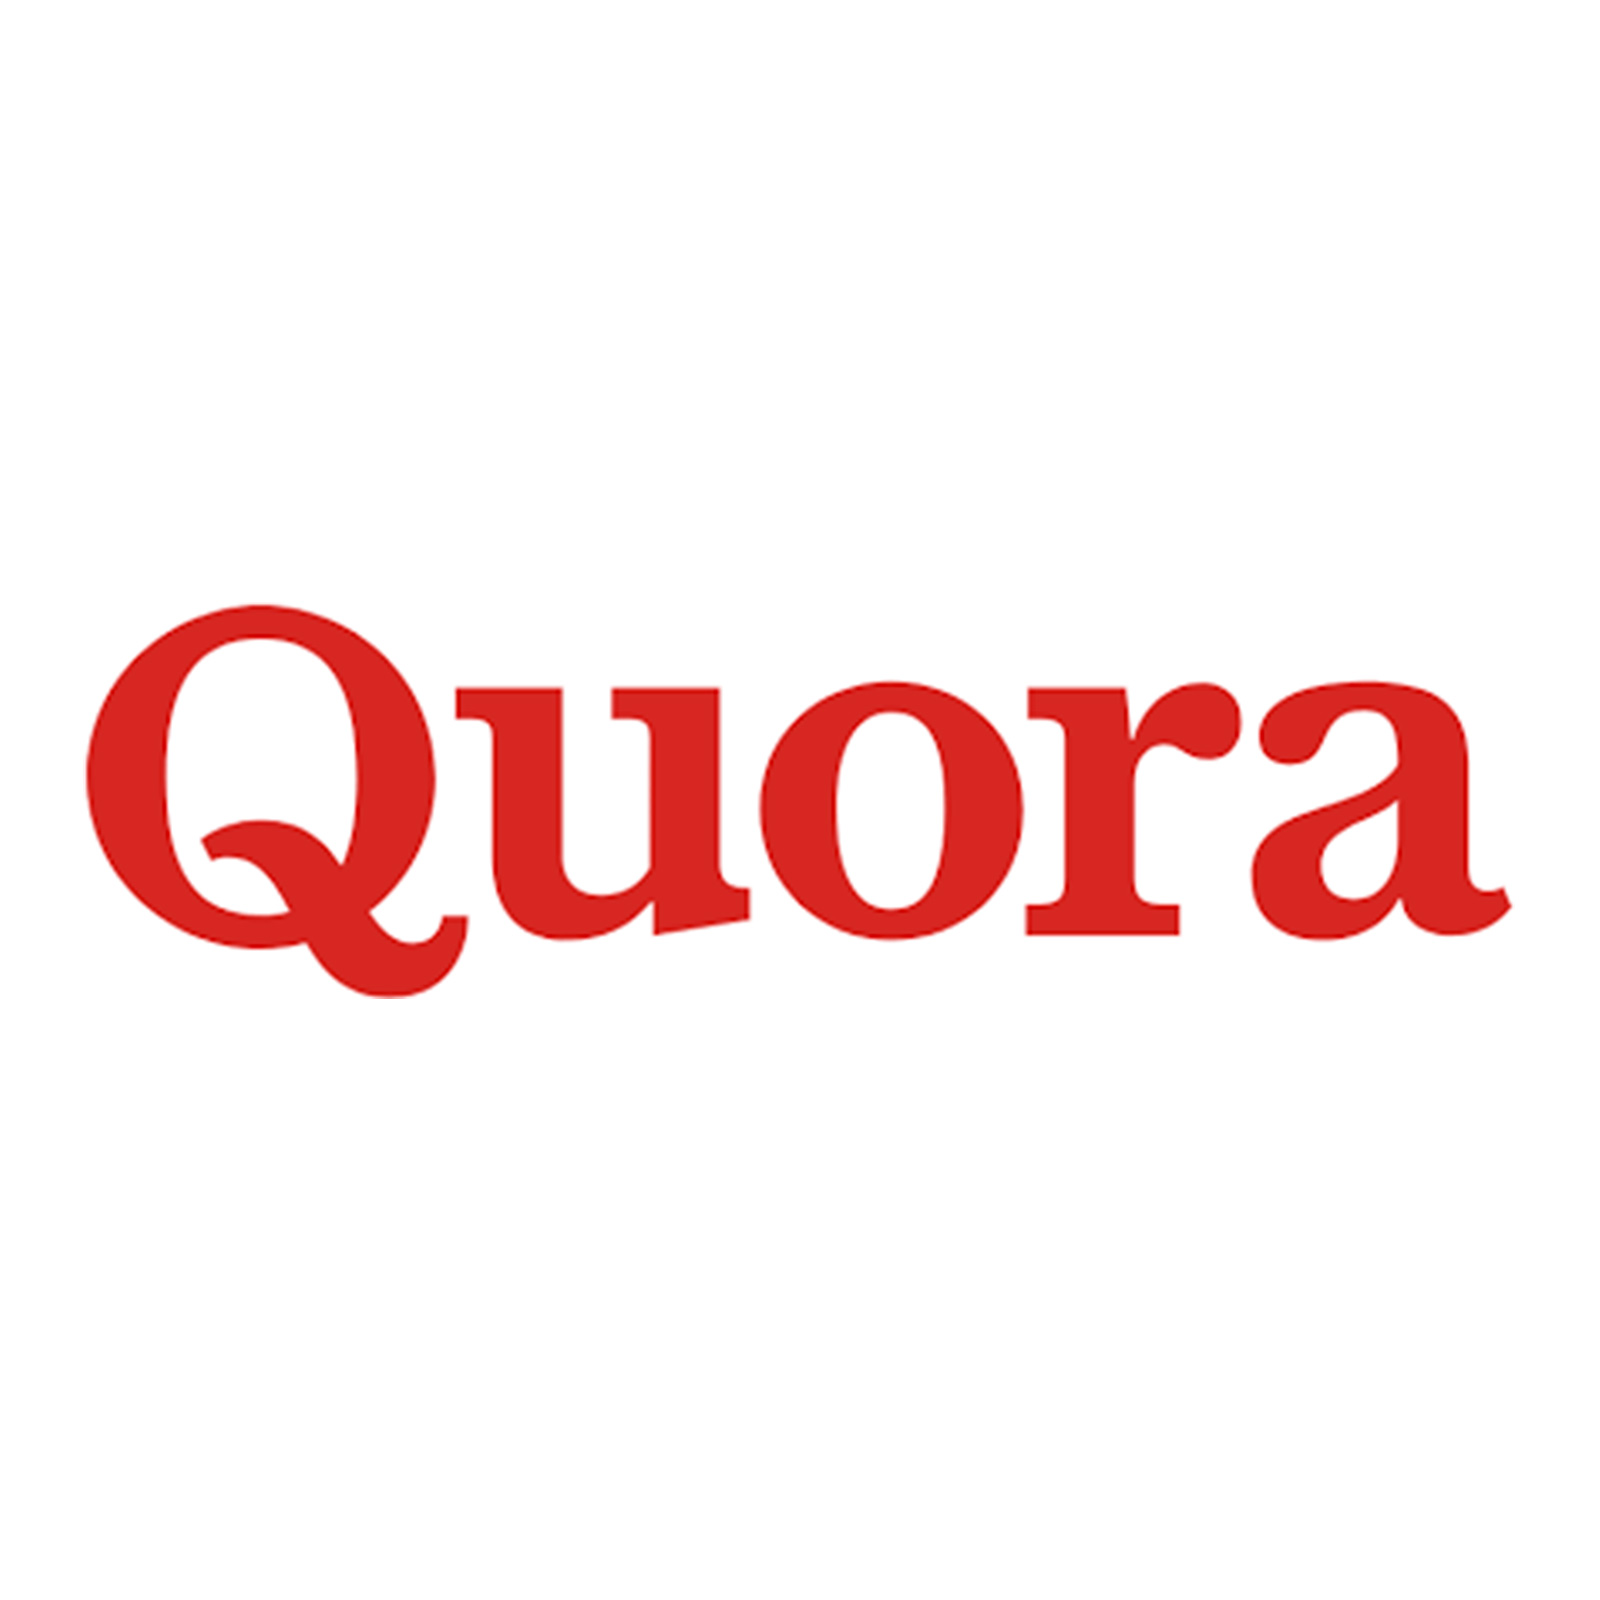 Quora is a question-and-answer site where questions are asked, answered, edited, and organized by its community of users